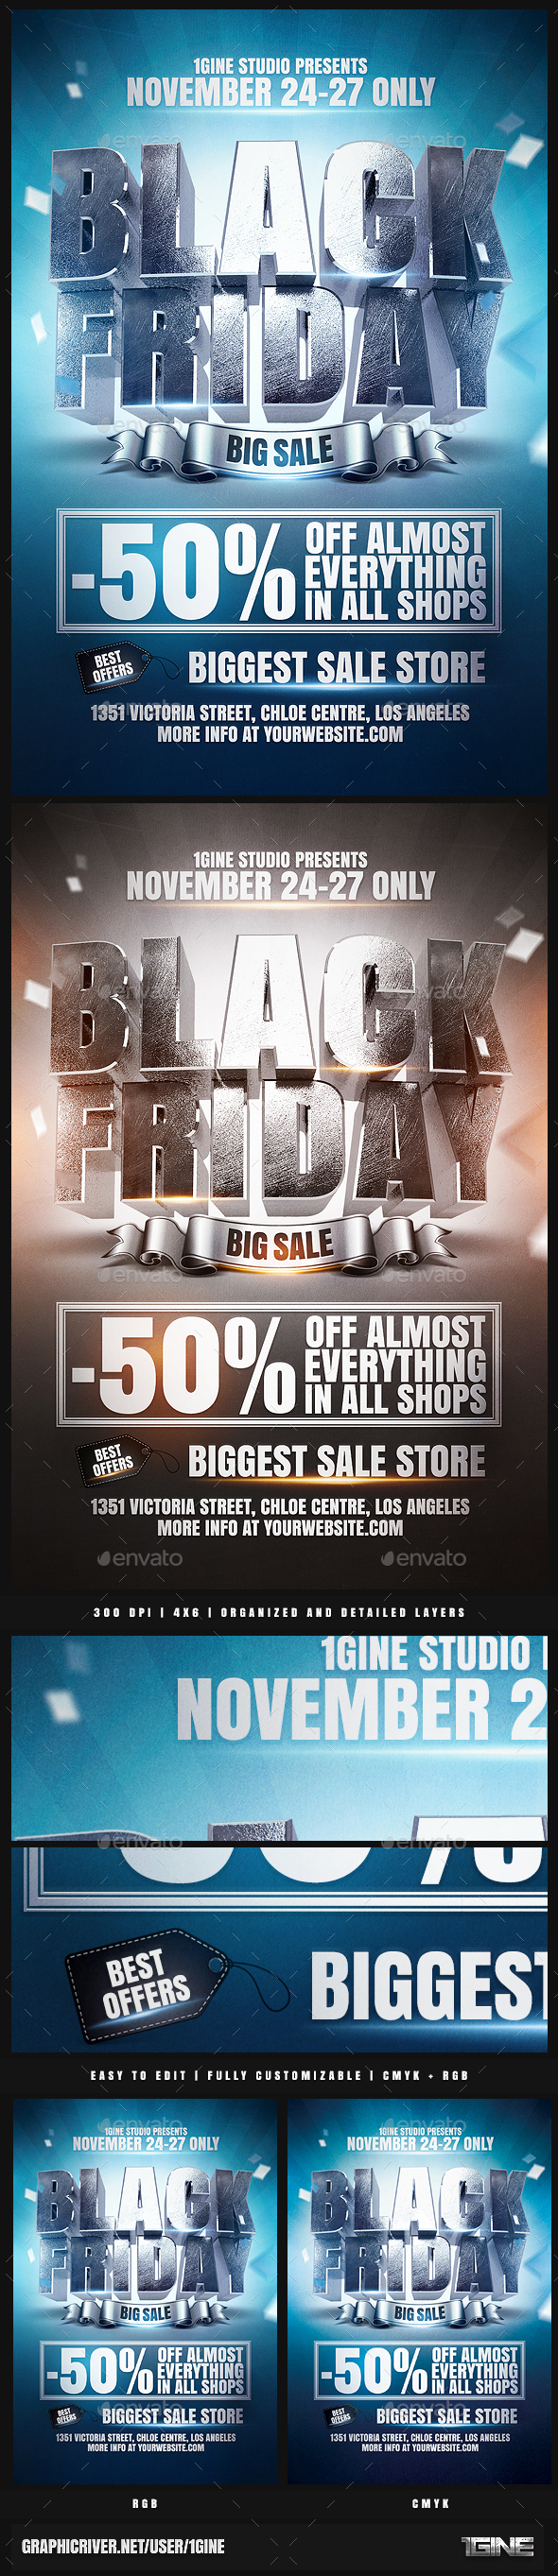 Black Friday Sale Flyer Template - Events Flyers